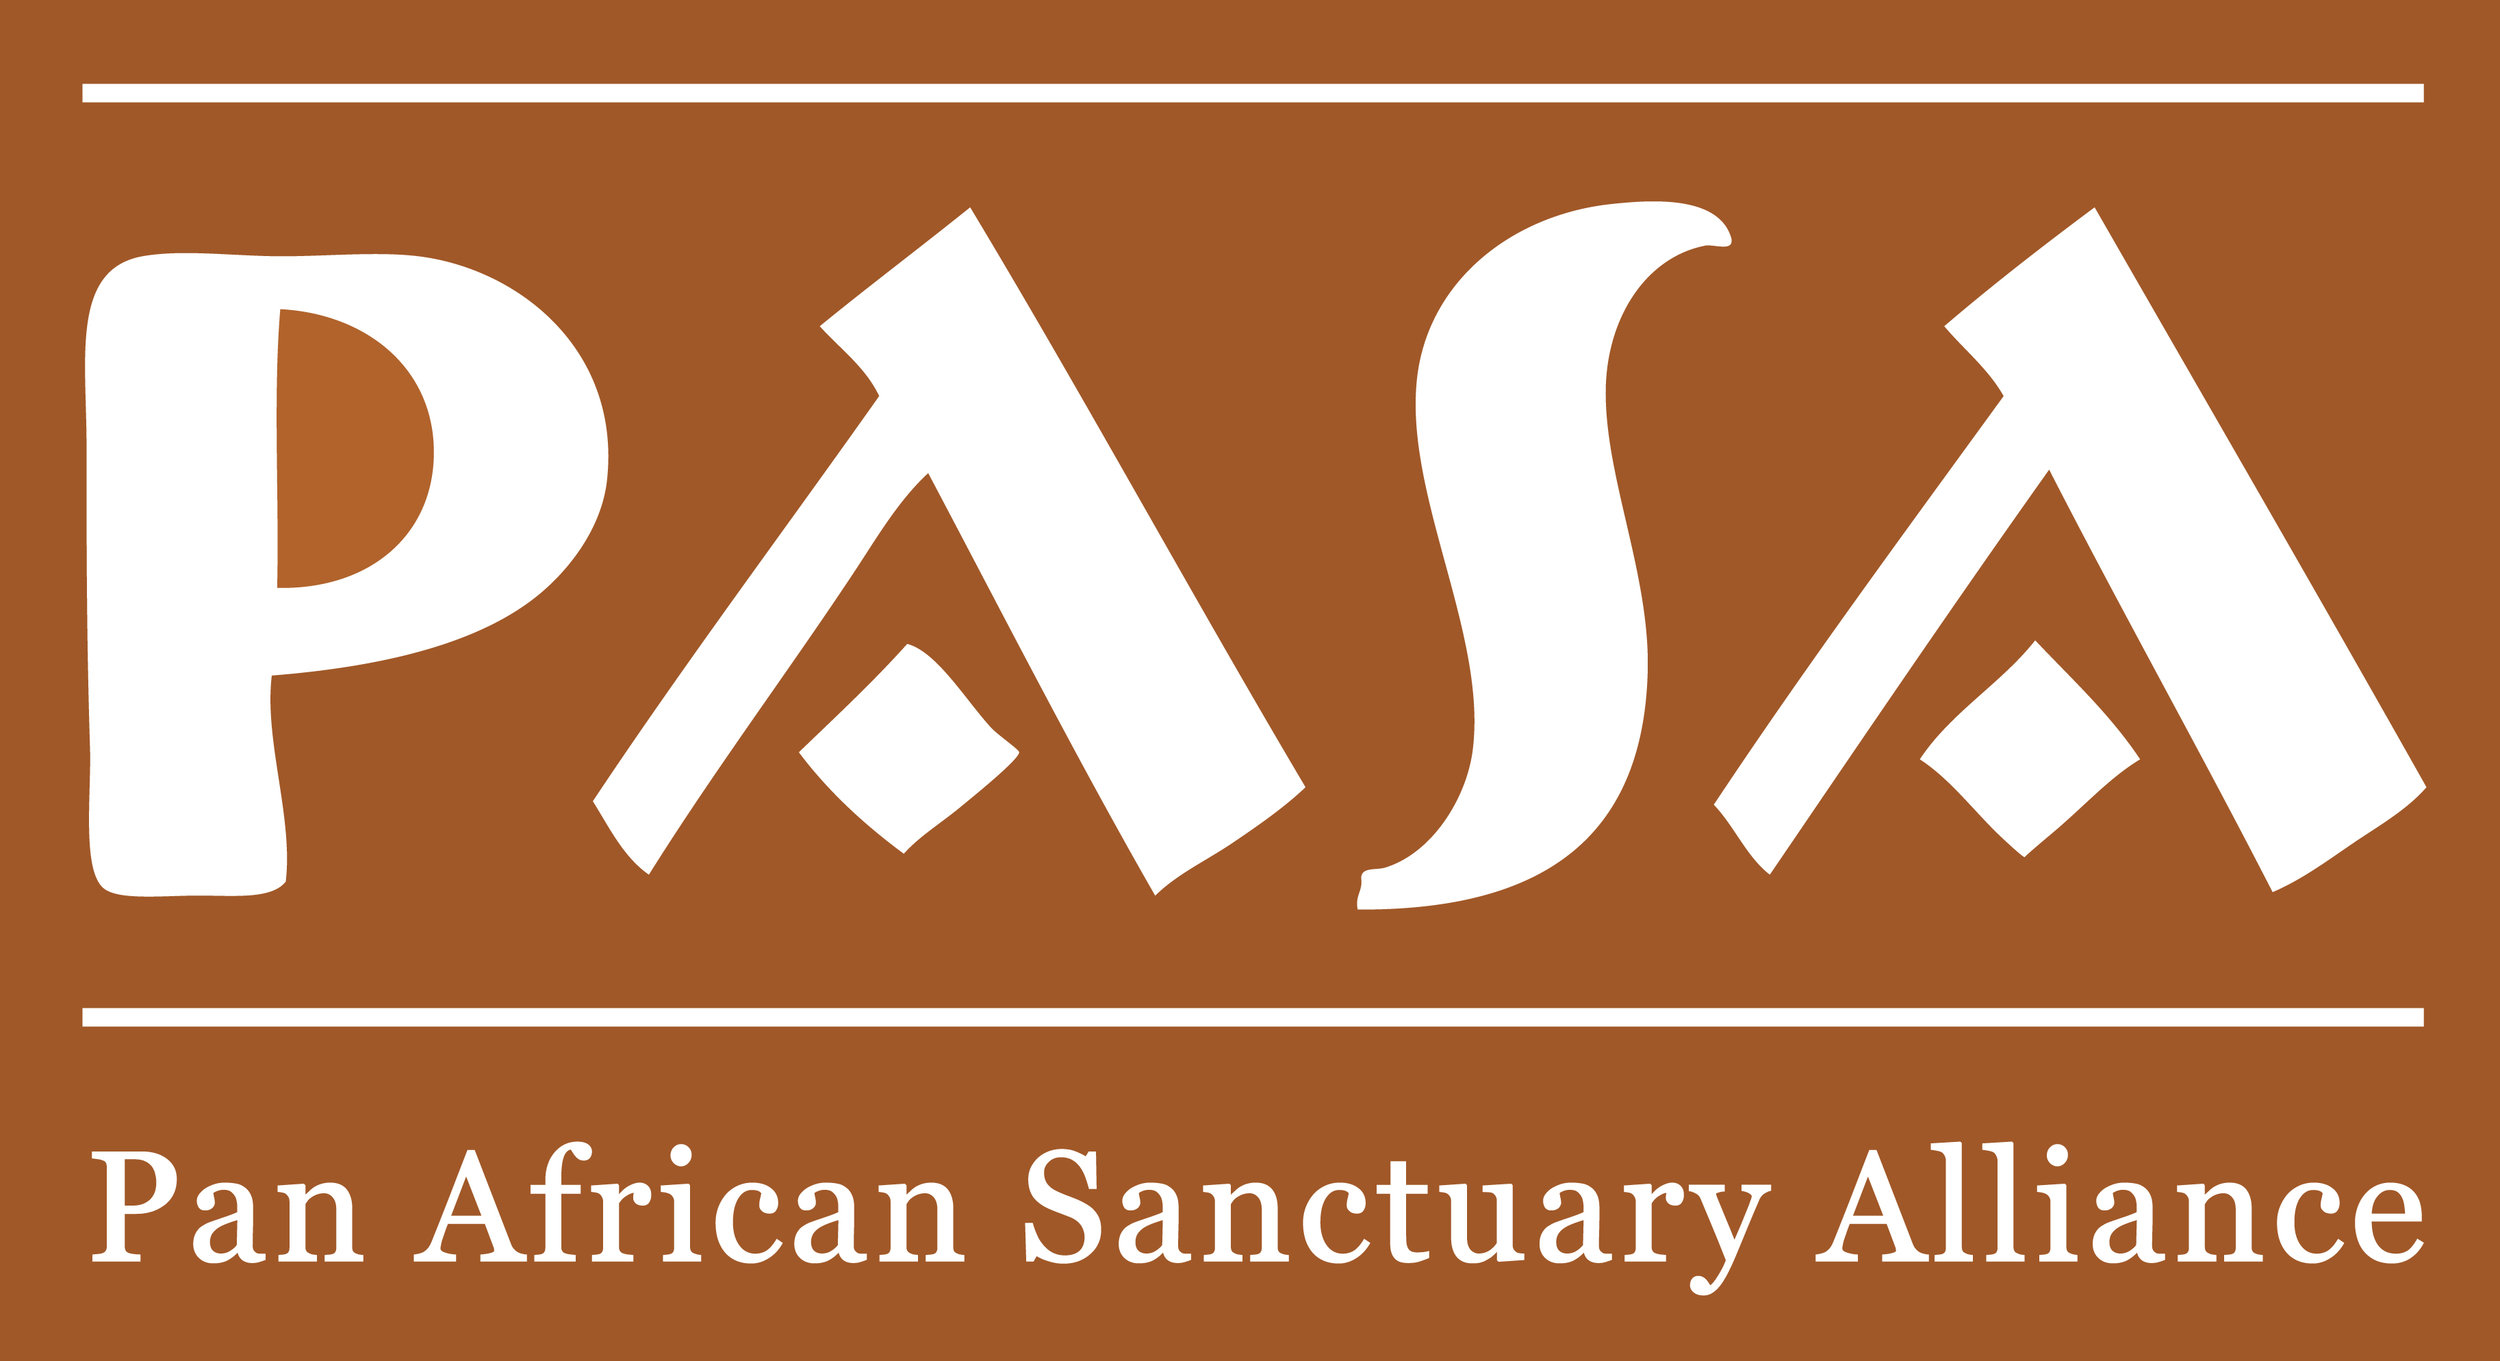 Pan African Sanctuary Alliance